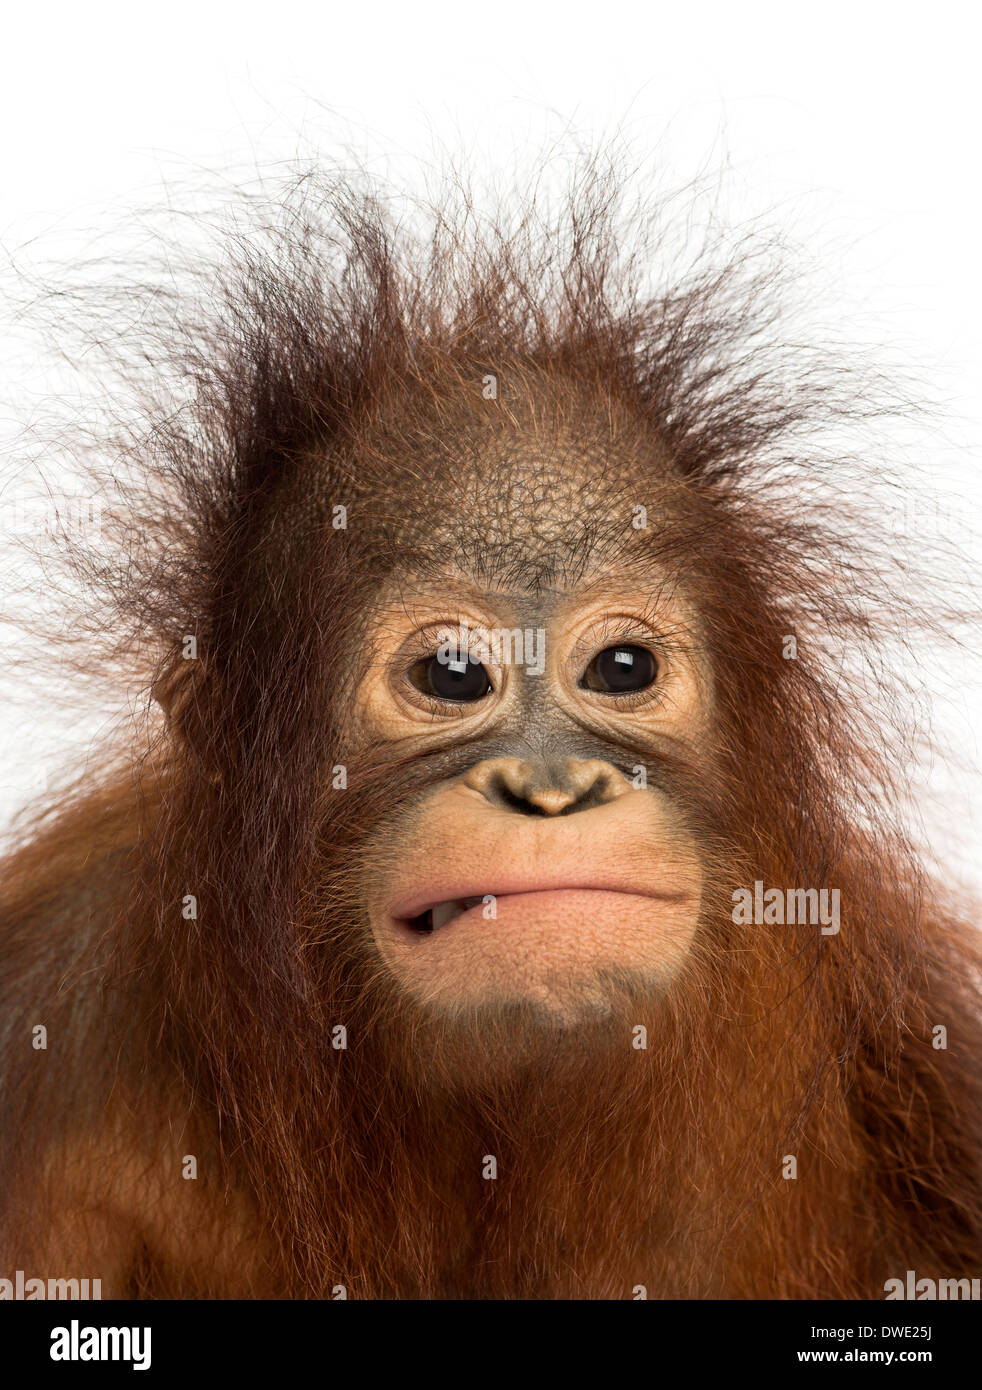 Close-up of a young Bornean orangutan making a face, Pongo pygmaeus, 18 months old, against white background - Stock Image